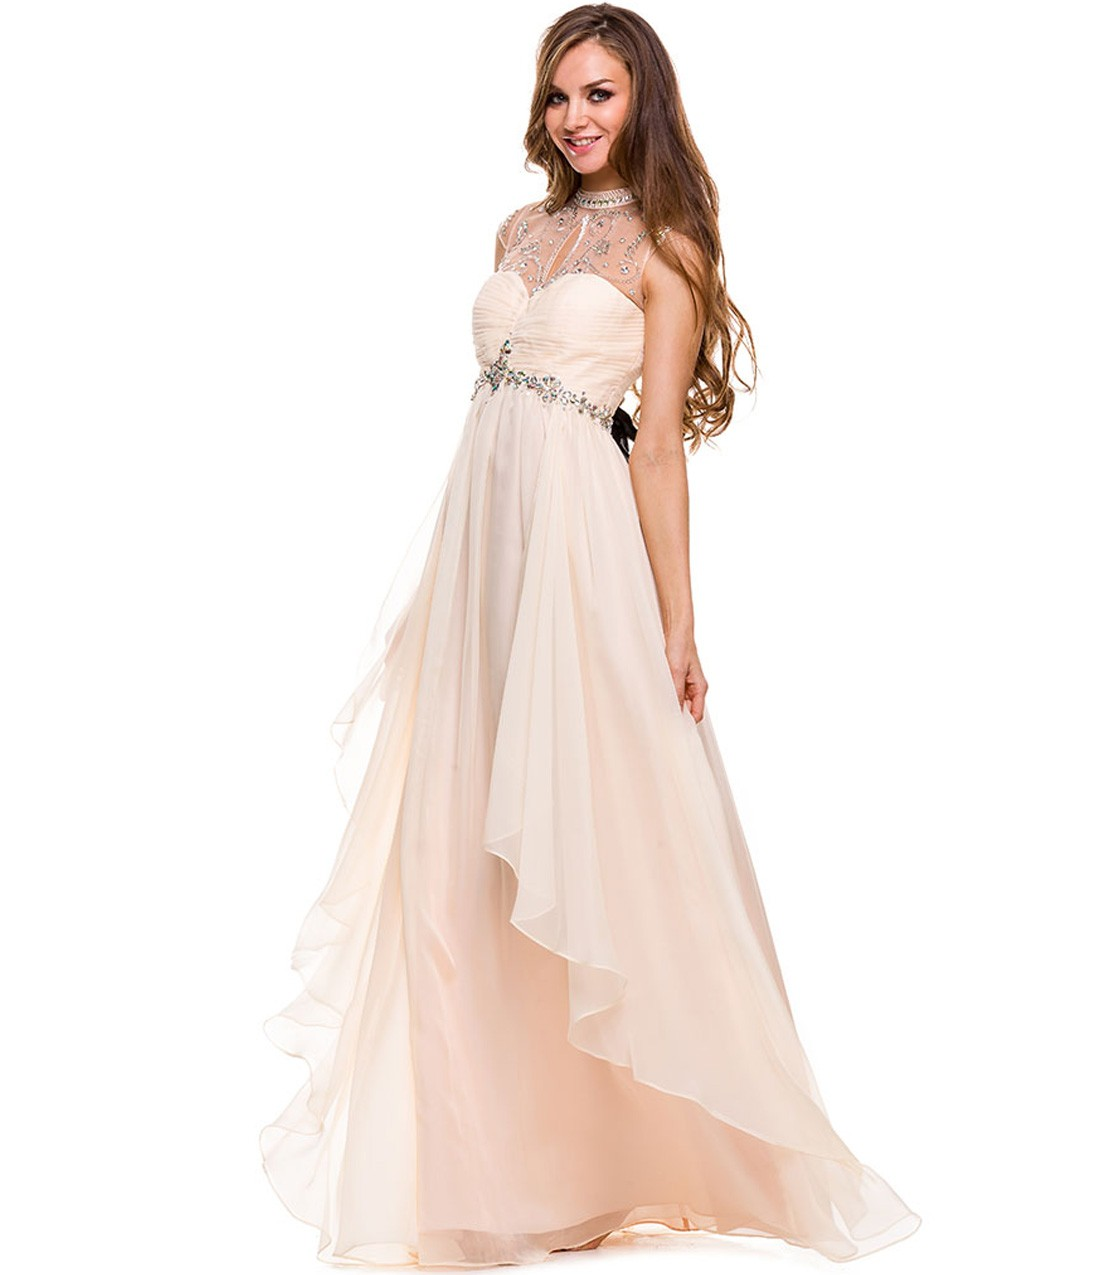 Vintage Halter Neck Crystal Detailling High Low Blush Chiffon Prom Dress